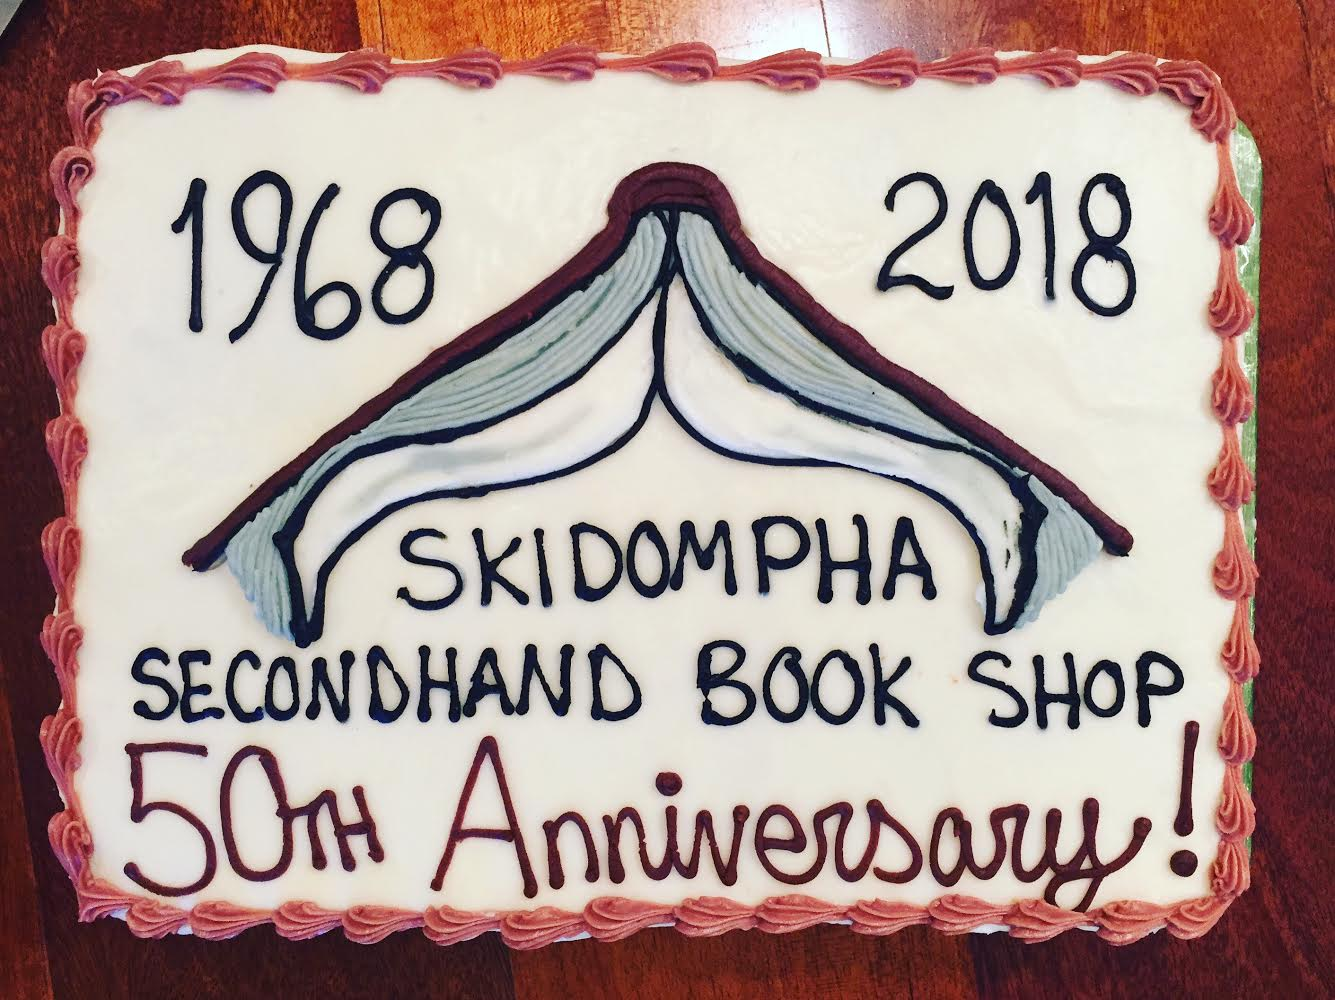 Skidompha Secondhand Book Shop's 50th Anniversary Cake (inspired by the new sign by Jacques Vesery) by  Barn Door Baking Co.